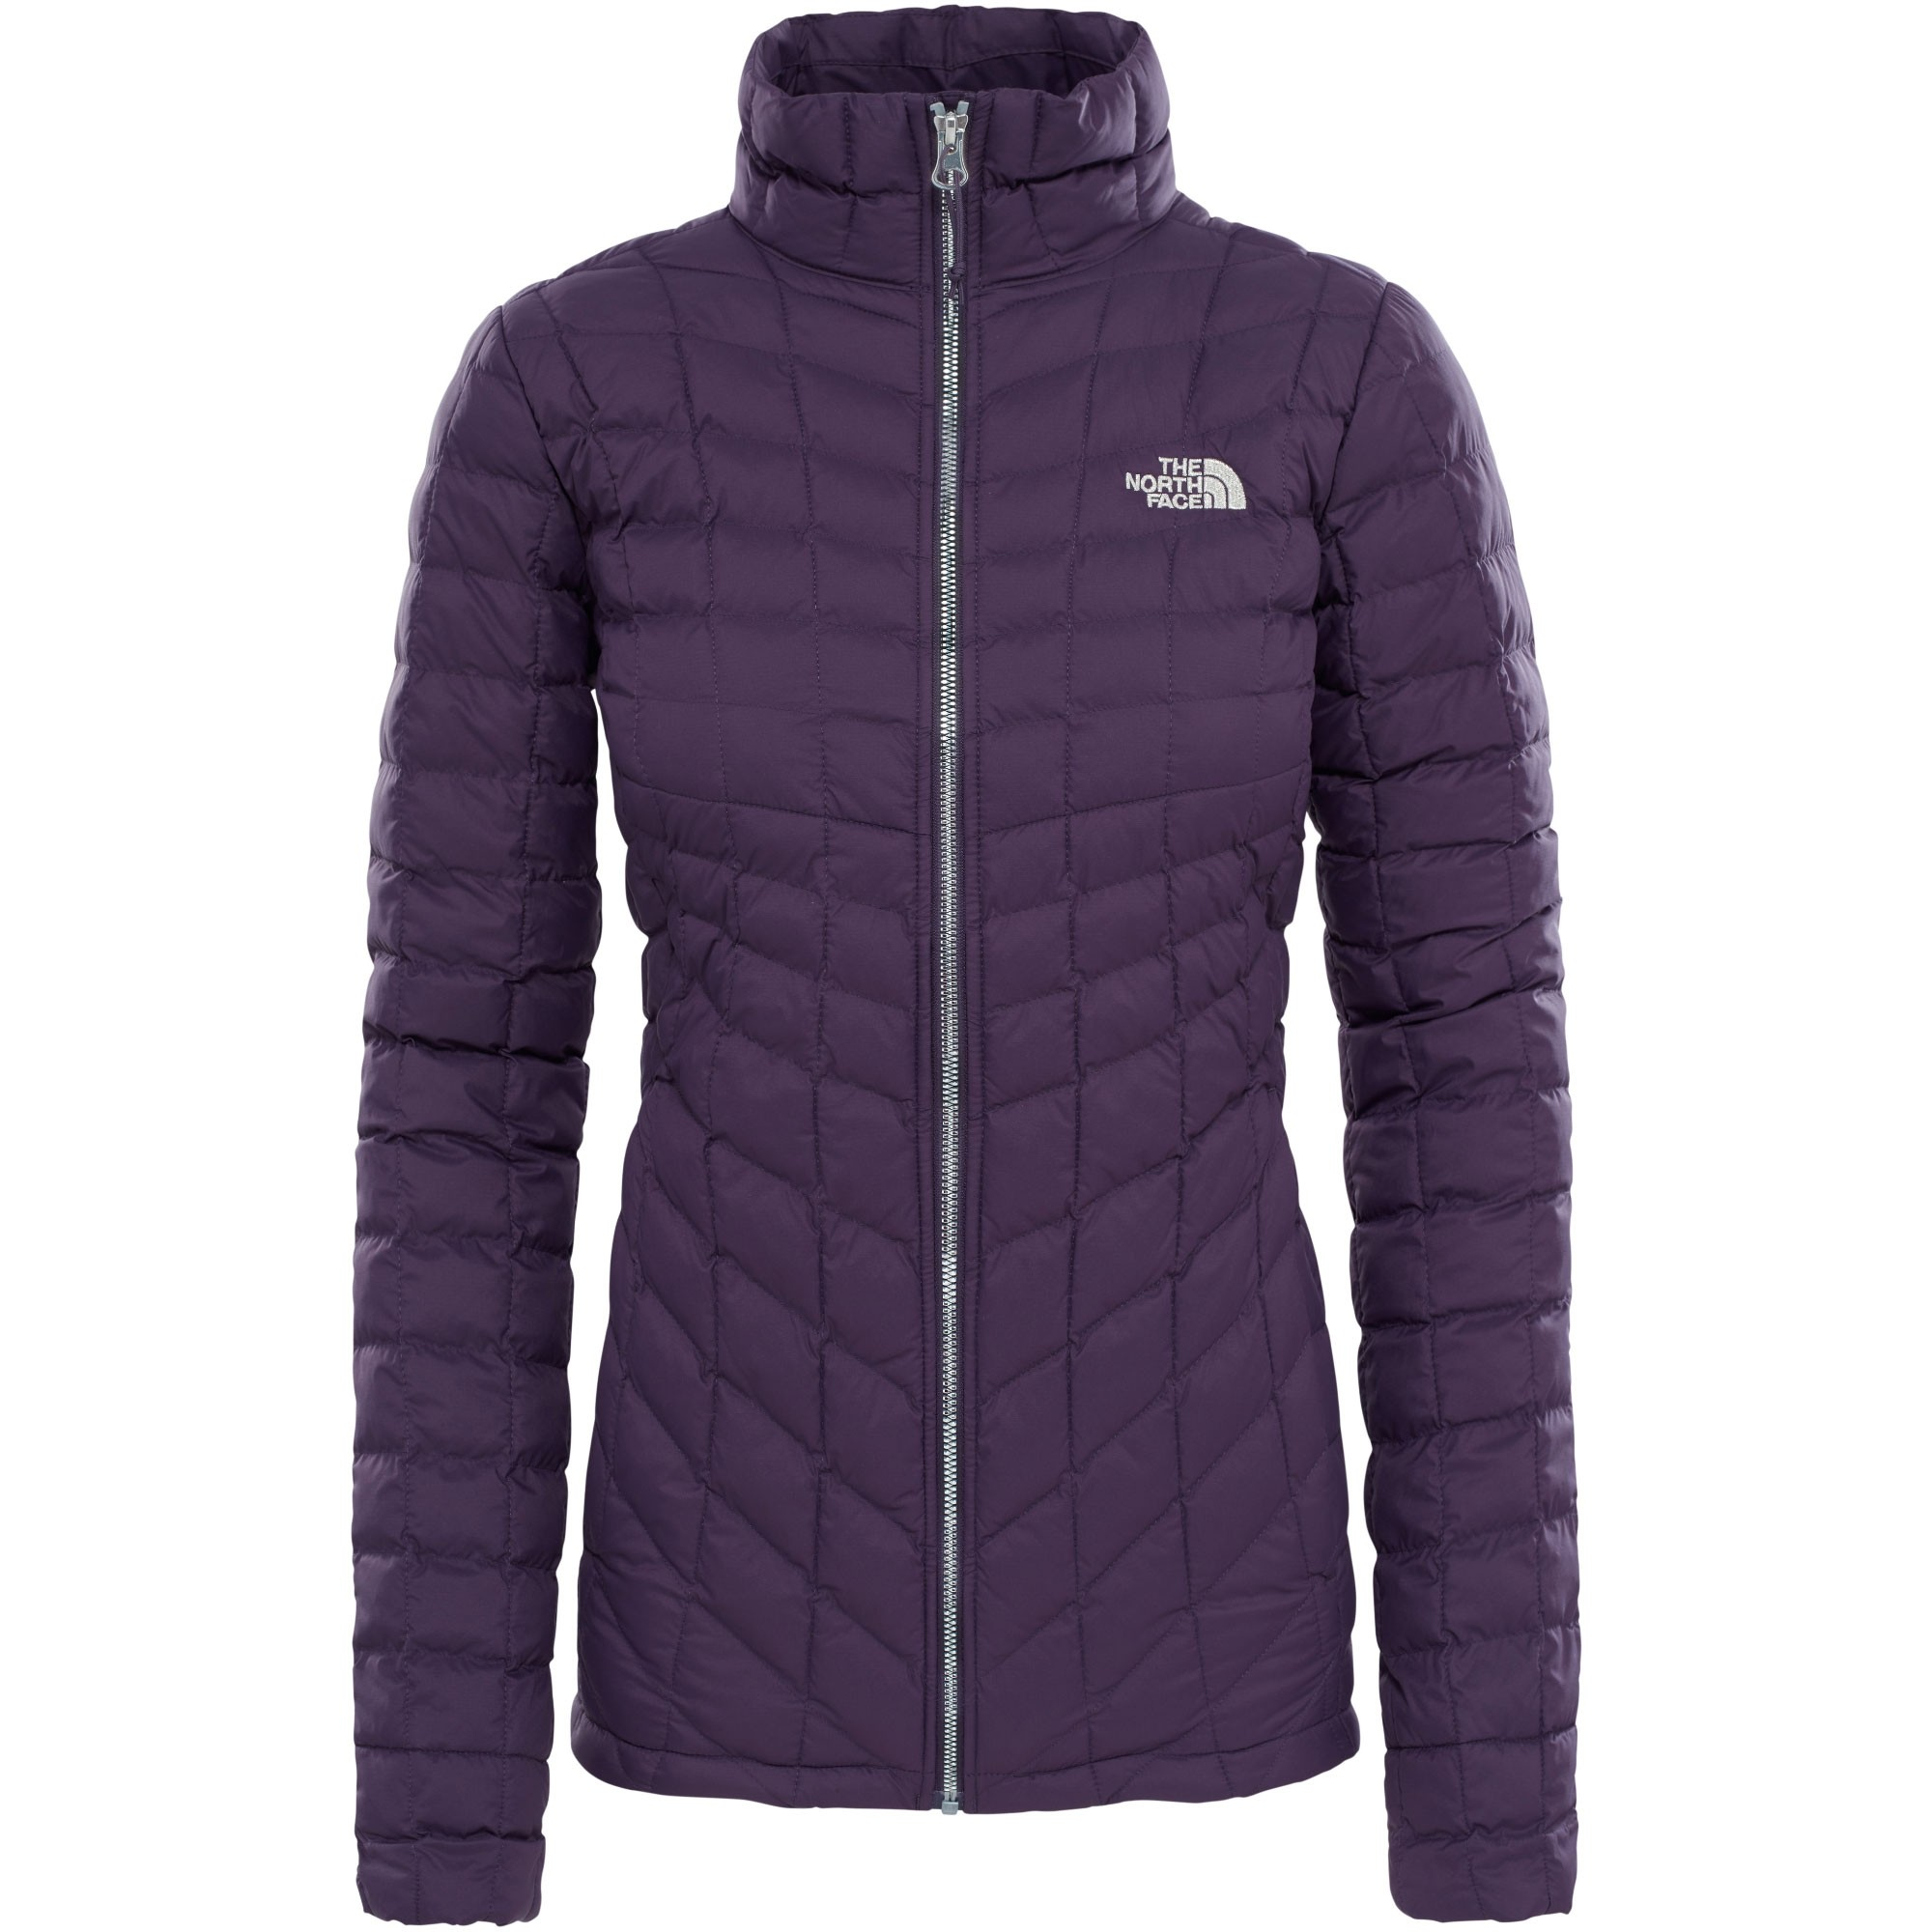 The-North-Face-Womens-Thermoball-Full-Zip-Jacket-Dark-Eggplant-Purple-Metallic-Silver-